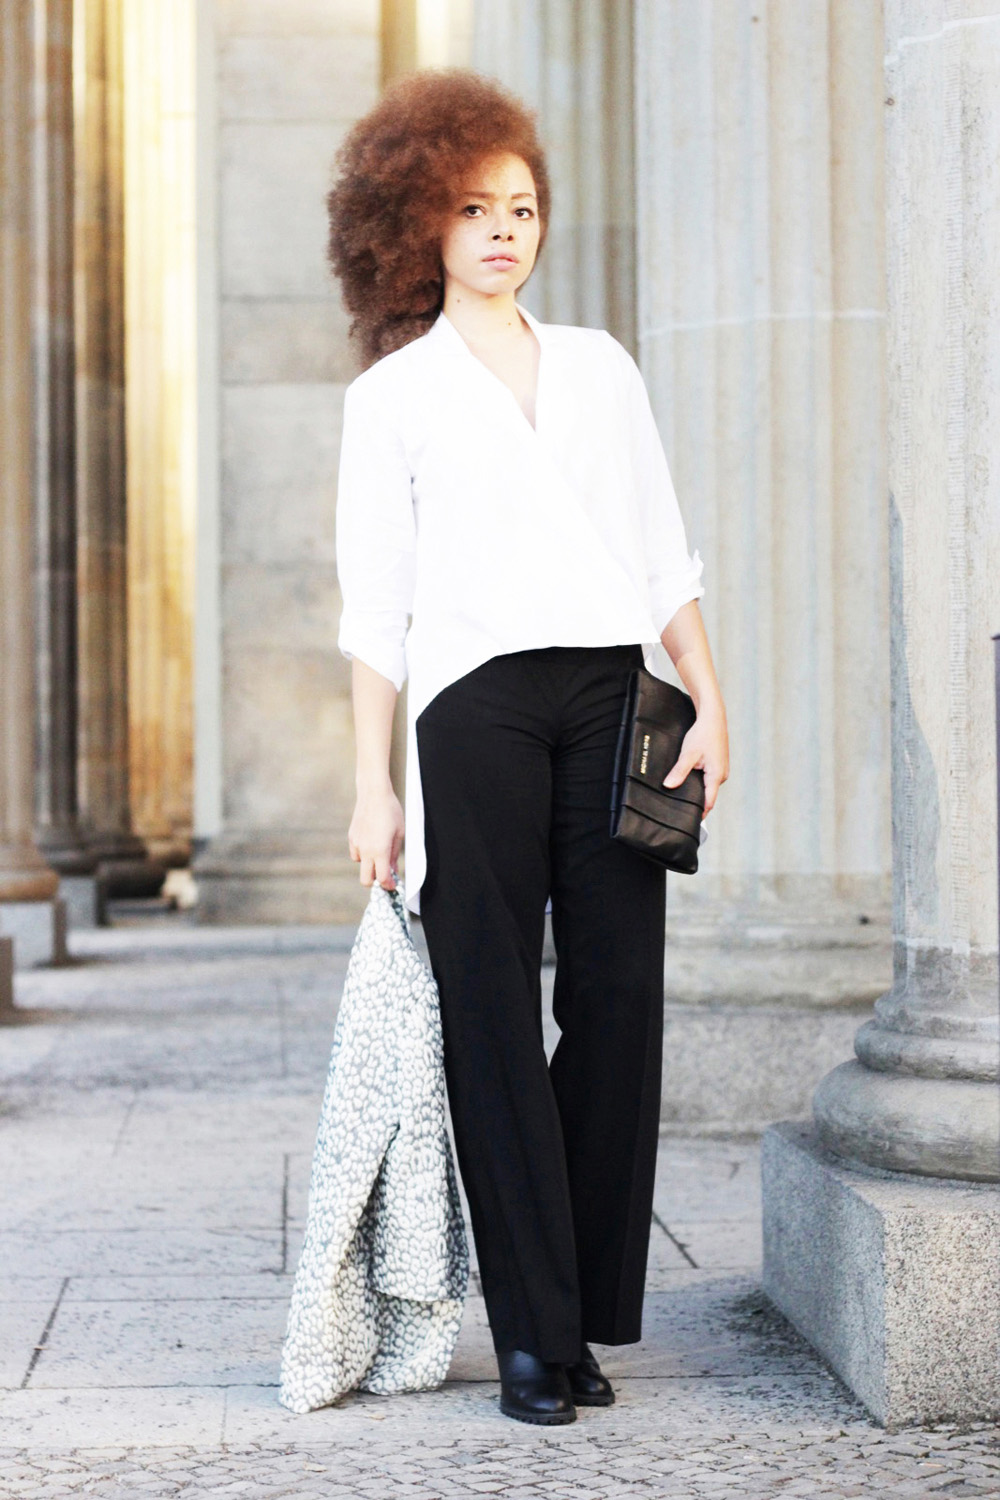 fatimayarie-afro-black-marlenepants-whiteblouse-clutch-img_1768